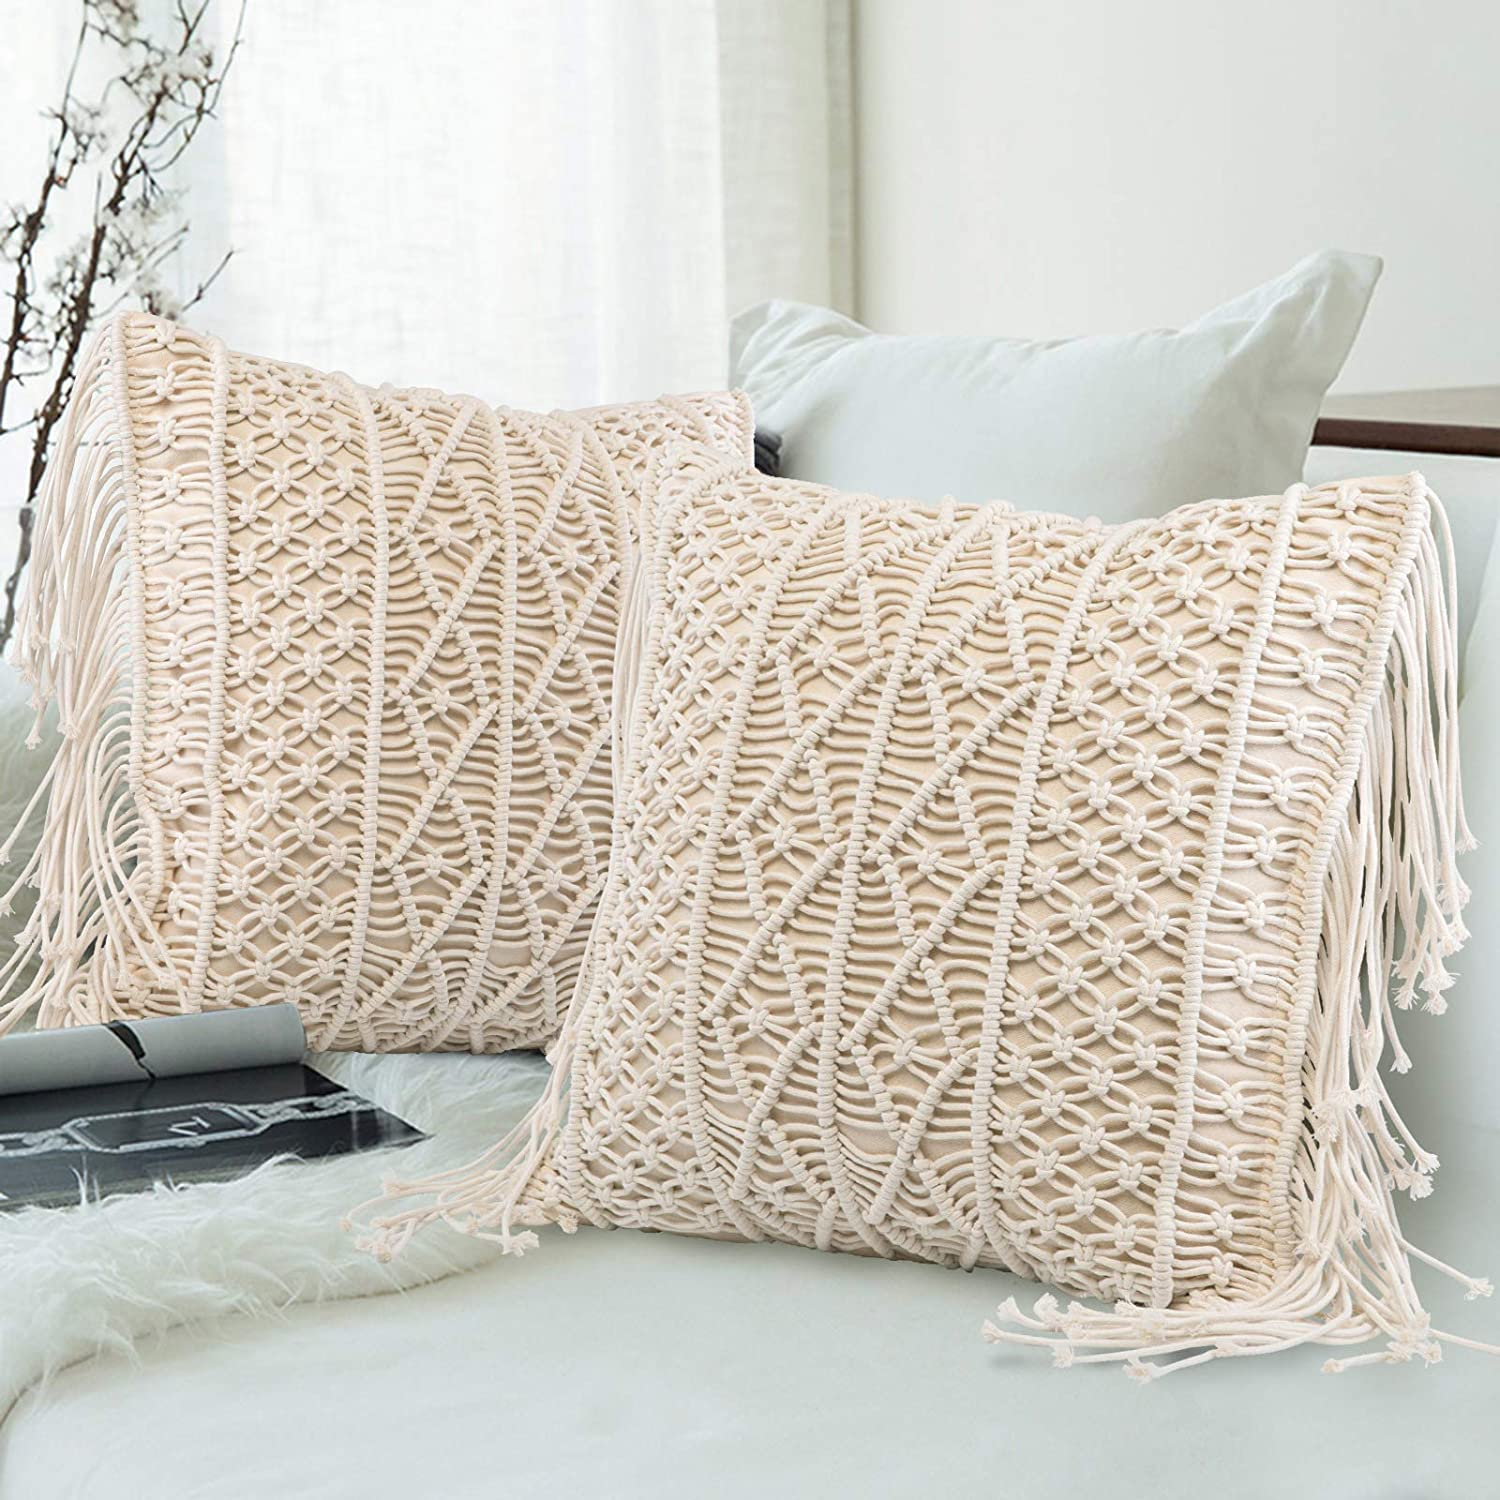 Throw Pillow Cover Set of 2, Macrame Cushion Case with Tassels Woven Boho Cushion Cover for Bed Sofa Couch Bench Car Home Decor Comfy Square Pillow Cushion Cover, 18 x 18 Inches B